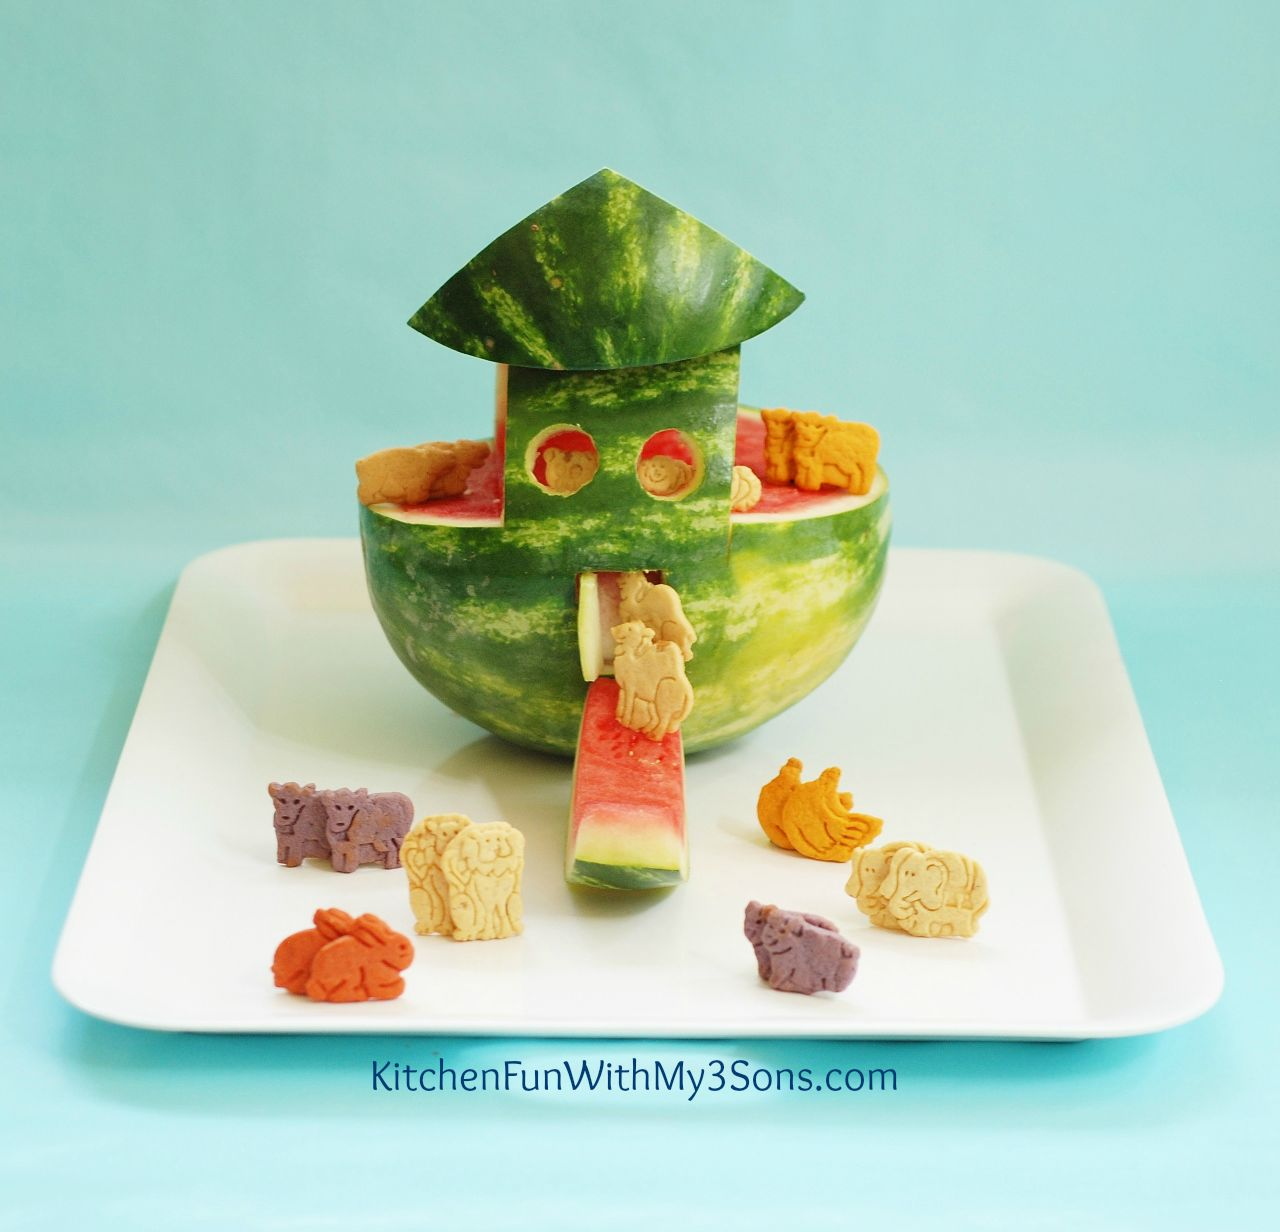 Noah S Ark Watermelon Snack Kitchen Fun With My 3 Sons